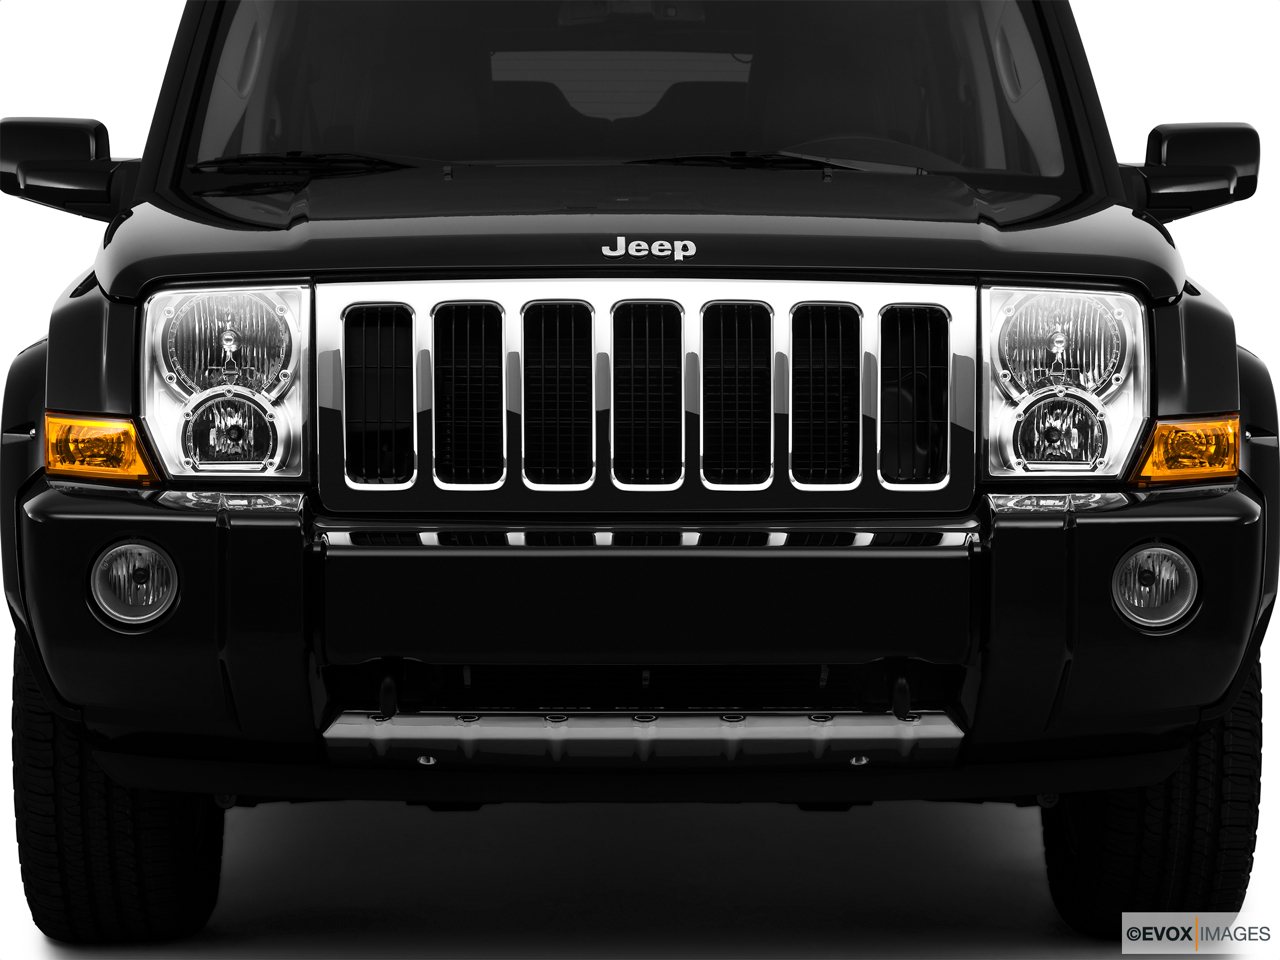 2010 Jeep Commander Limited Close up of Grill.